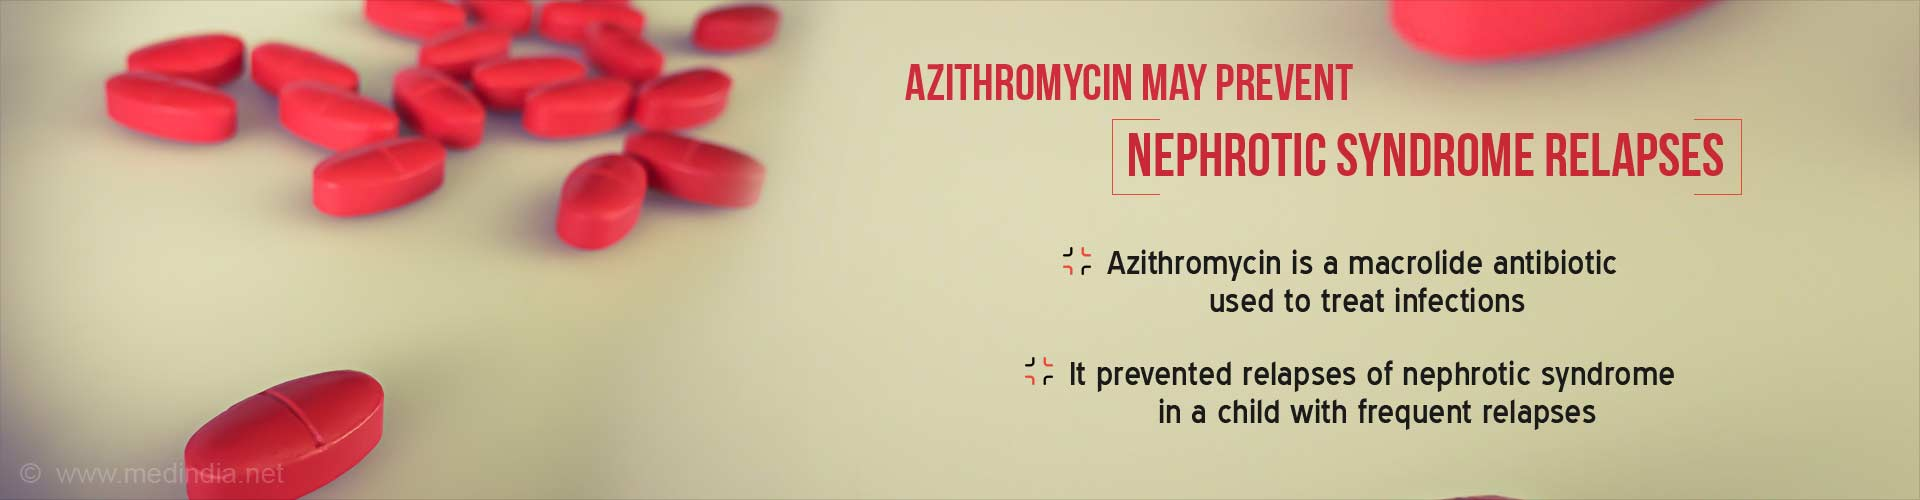 Azithromycin Prevents Relapses of Nephrotic Syndrome in a 2-year Old Child